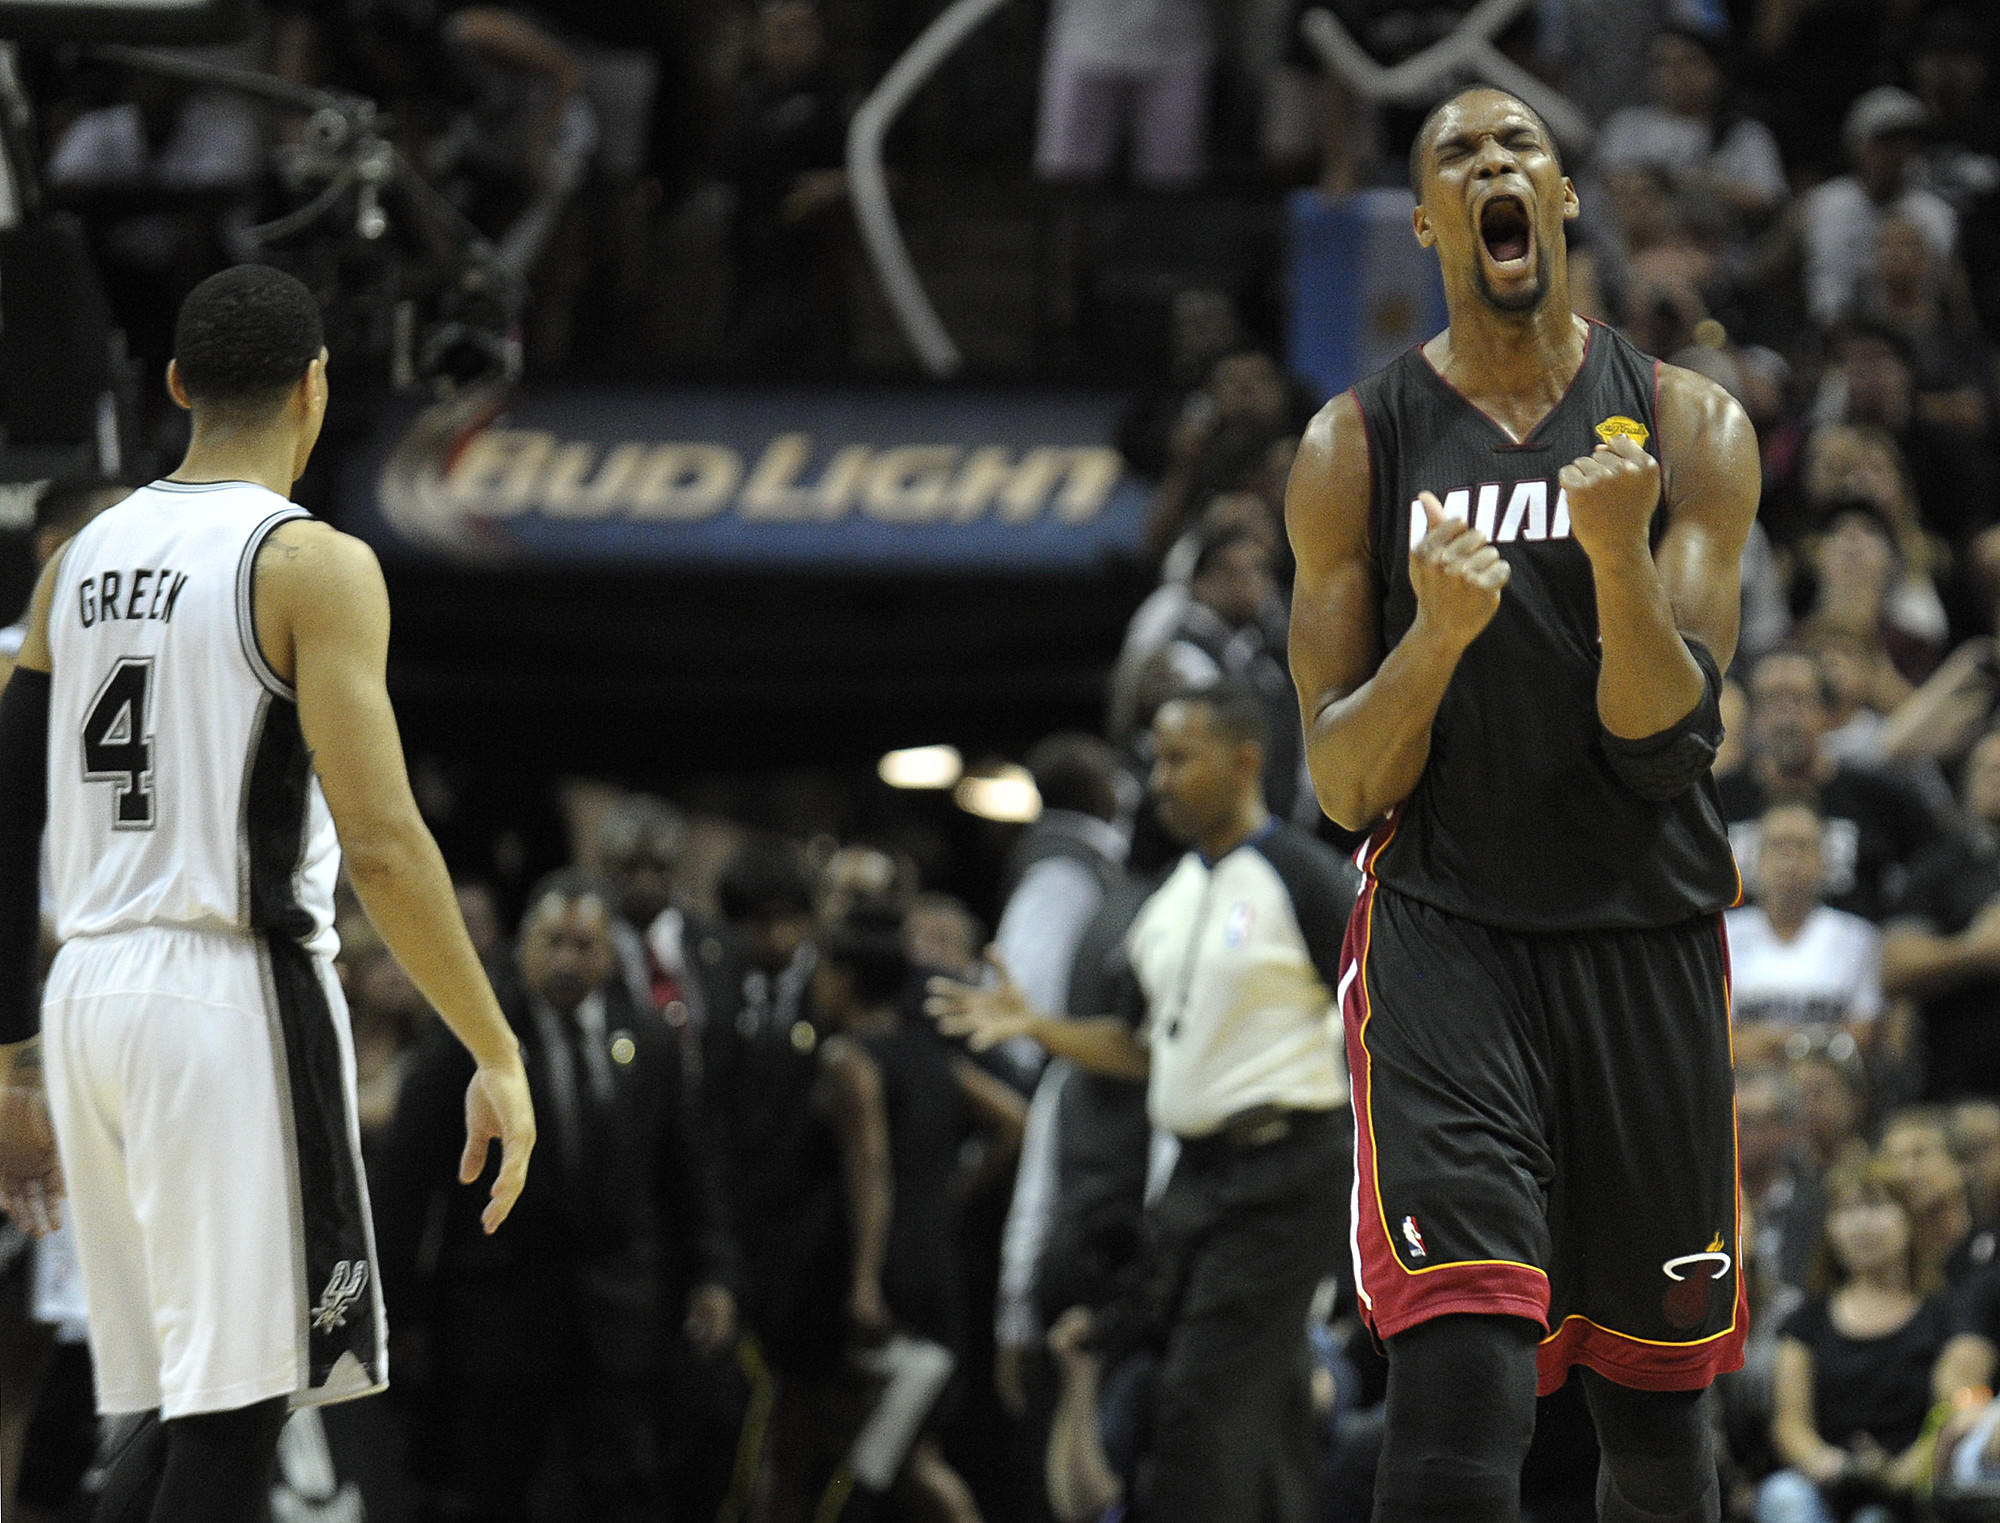 Miami Heat forward Chris Bosh reacts to a Dwyane Wade basket during the final minute of Game 2 of the NBA Finals against the San Antonio Spurs, Sunday, June 8, 2014. Michael Laughlin, South Florida Sun Sentinel